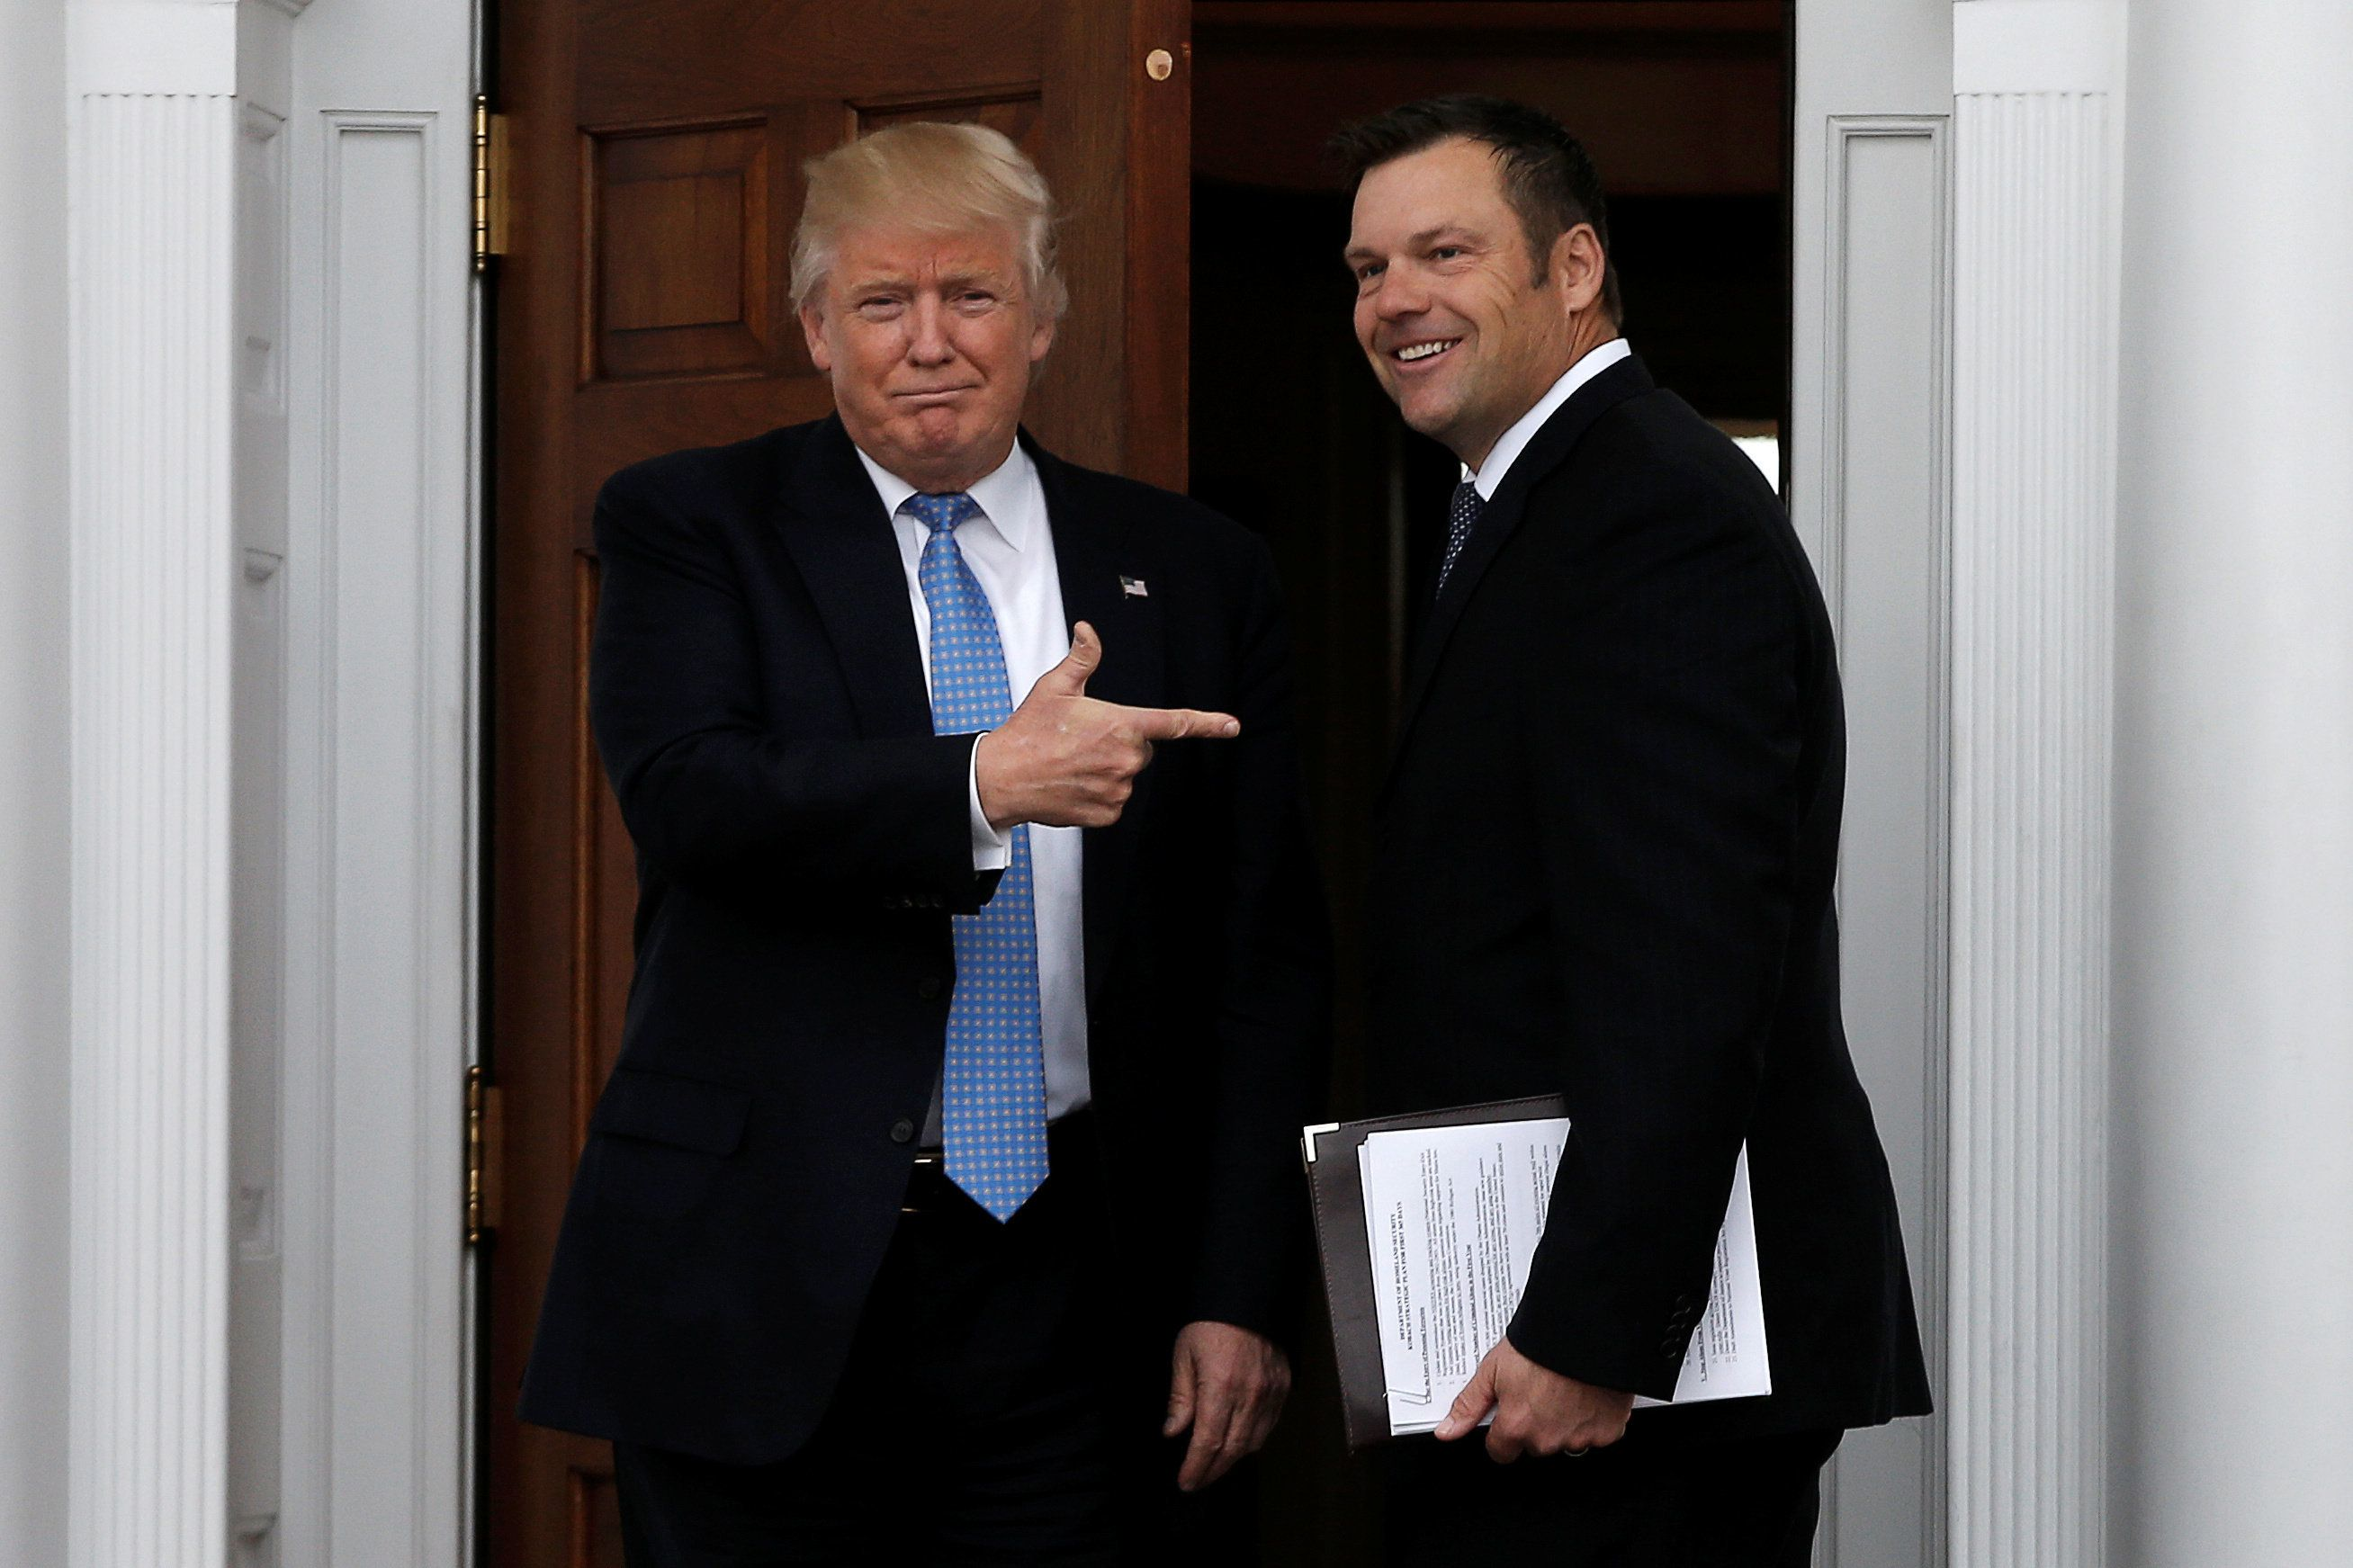 President Donald Trump has pointed to Kansas Secretary of State Kris Kobach (R) as someone who can justify the president